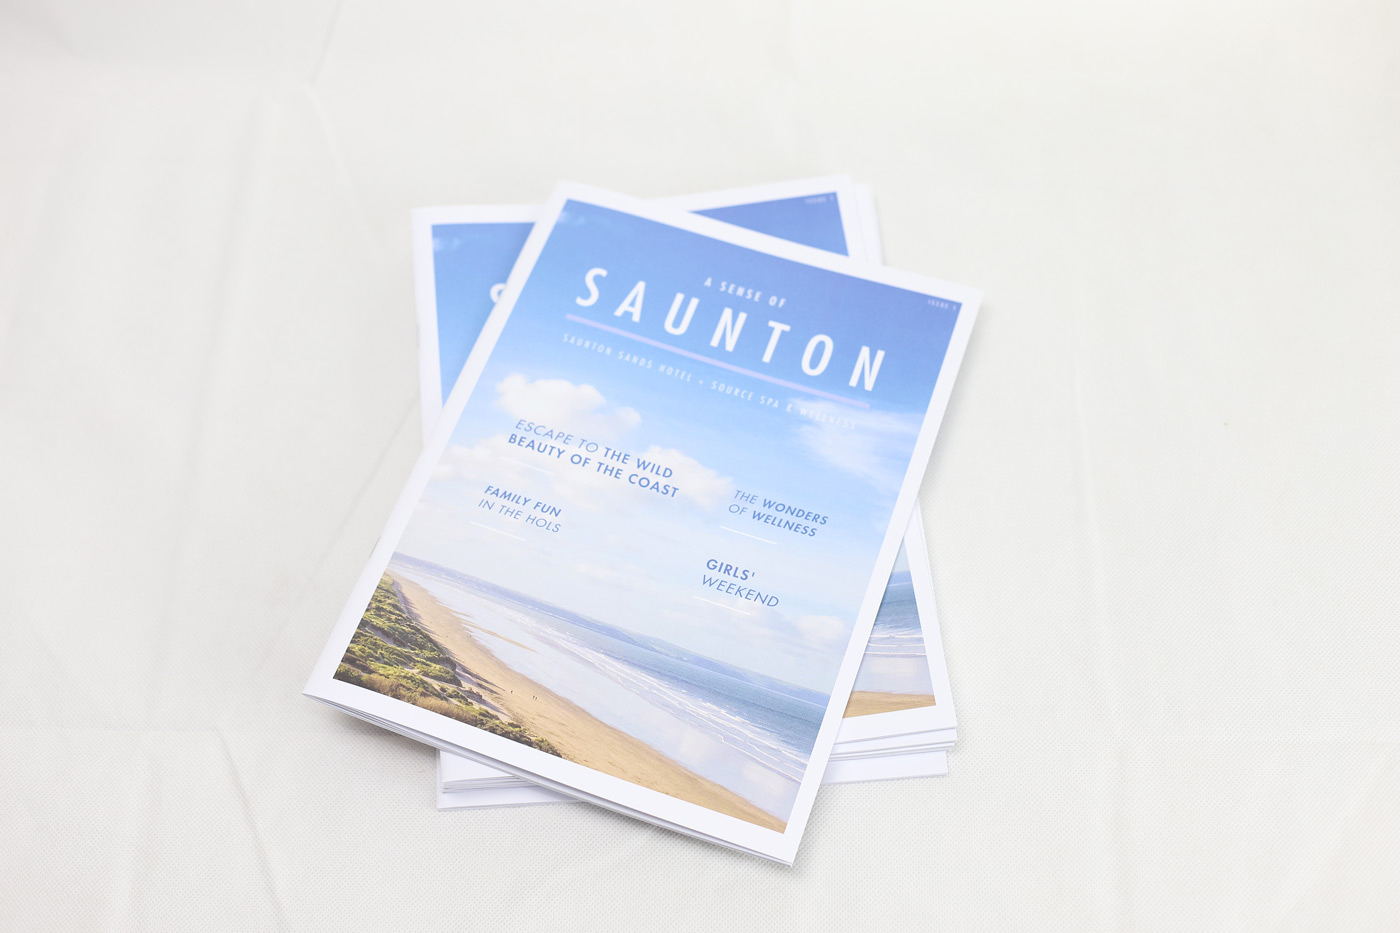 A Sense of Saunton